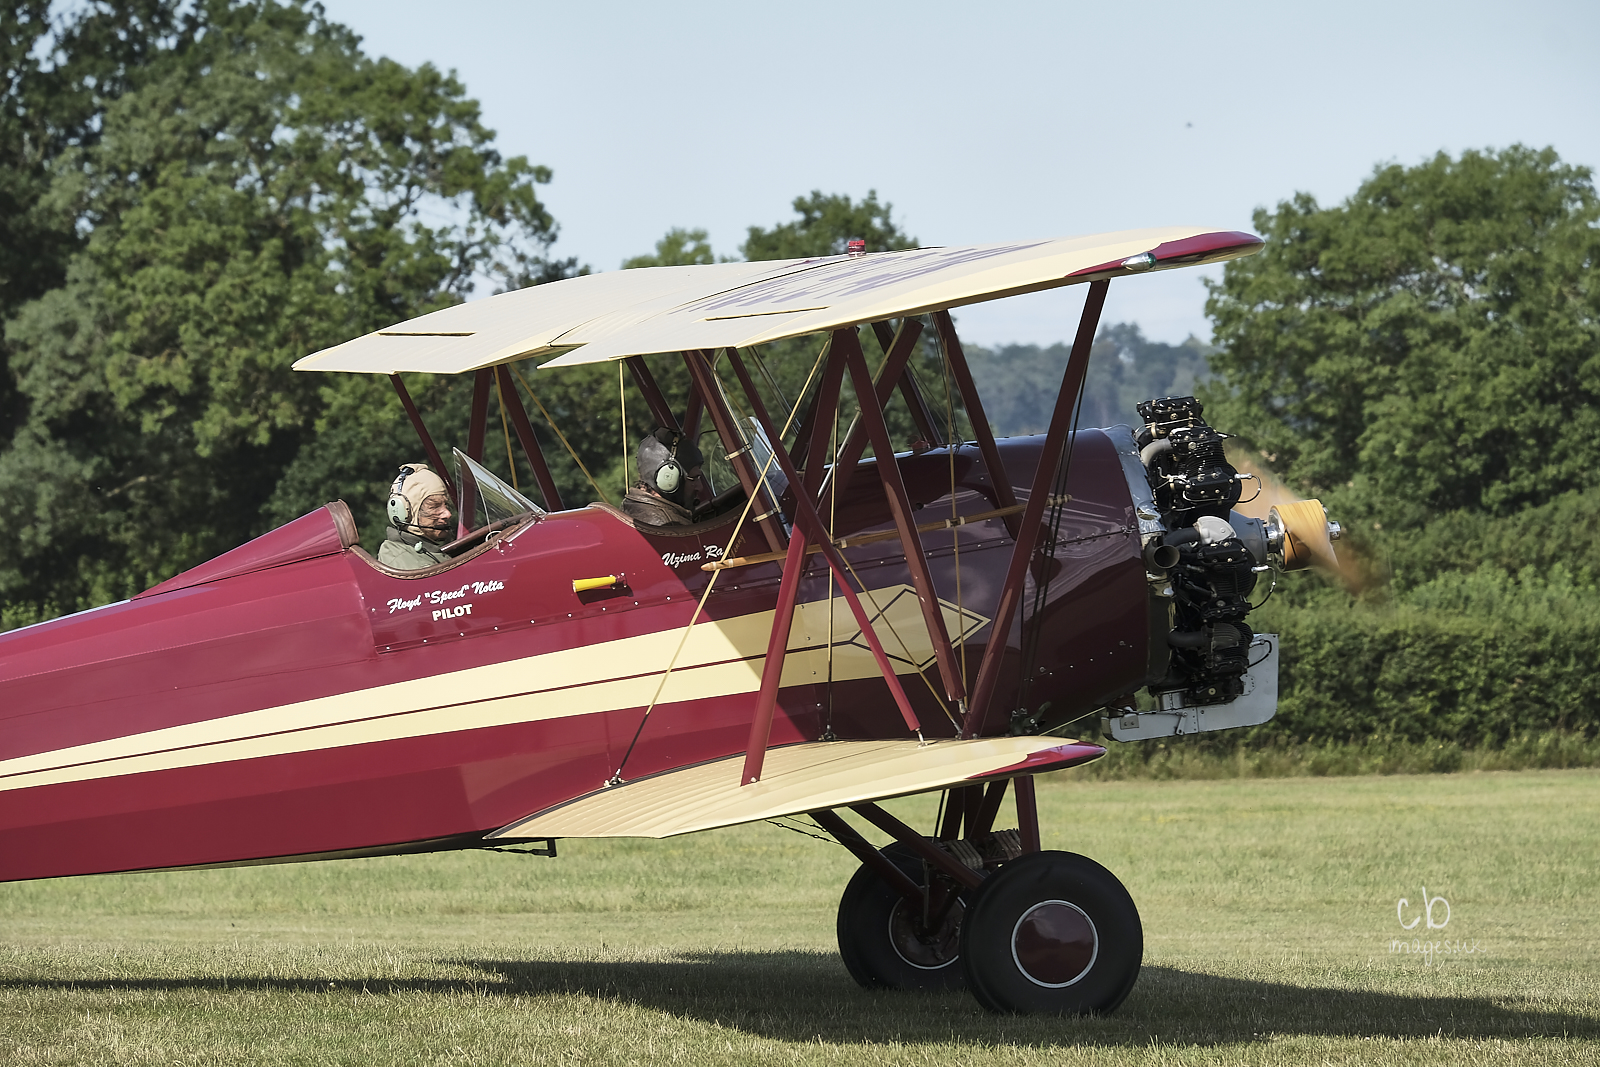 A biplane with two pilots